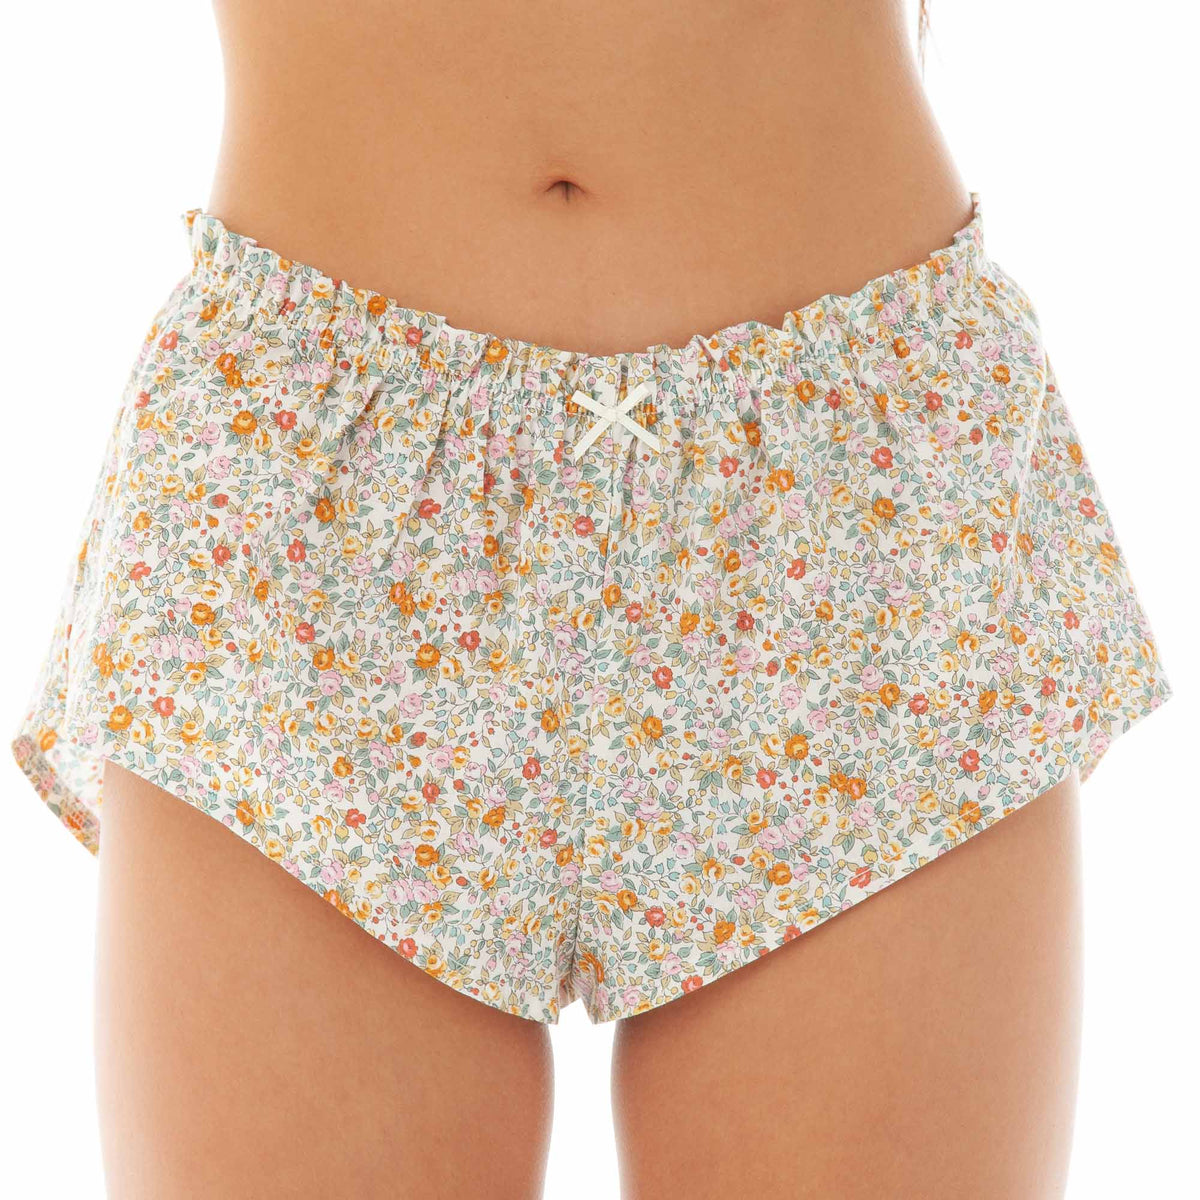 Are You Am I - Prinny Floral Boxer